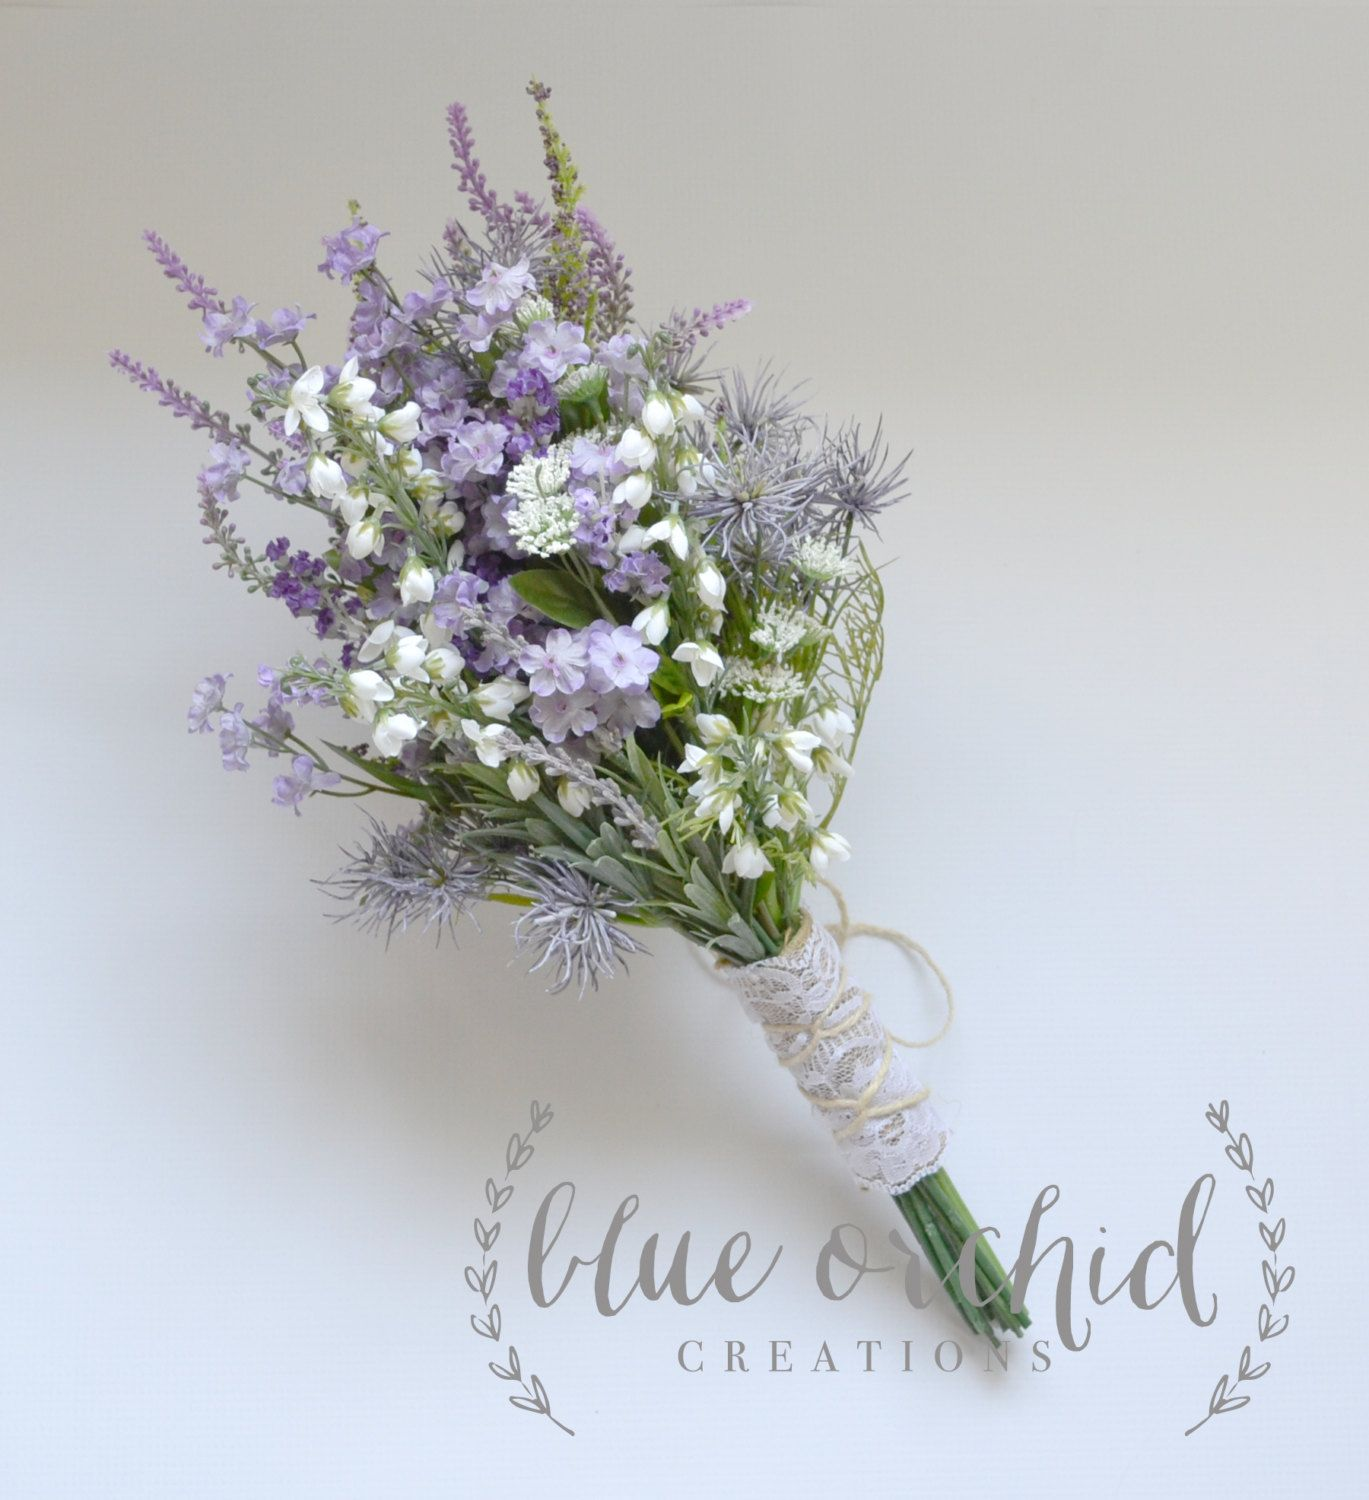 Purple Wildflower Bouquet Rustic Bouquet Lavender Wildflower Bouquet Shabby Chic Bouquet Wedding Flowers Bridal Bouquets Wildflower Bouquet Bridal Bouquet